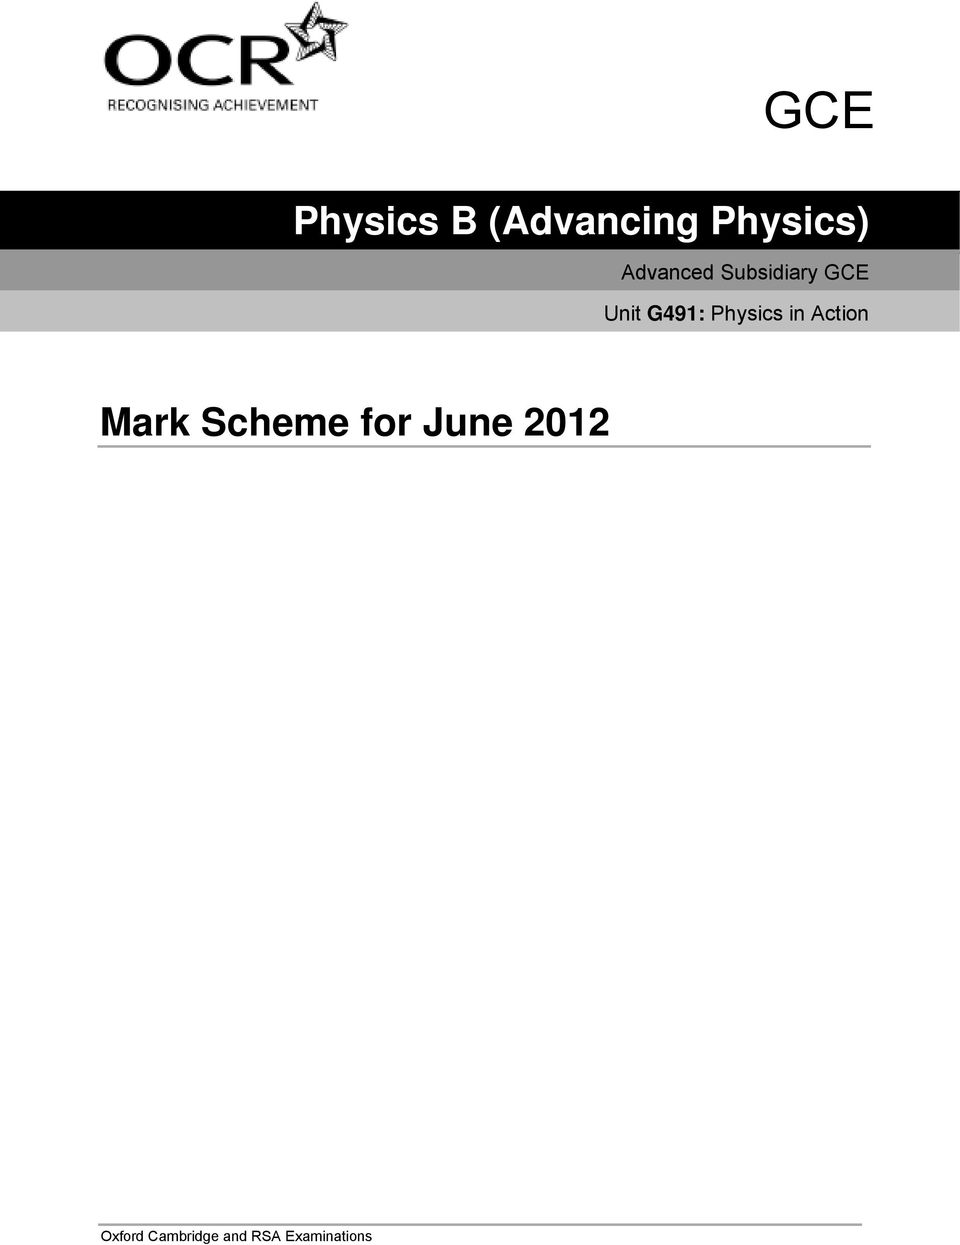 Physics in Action Mark Scheme for